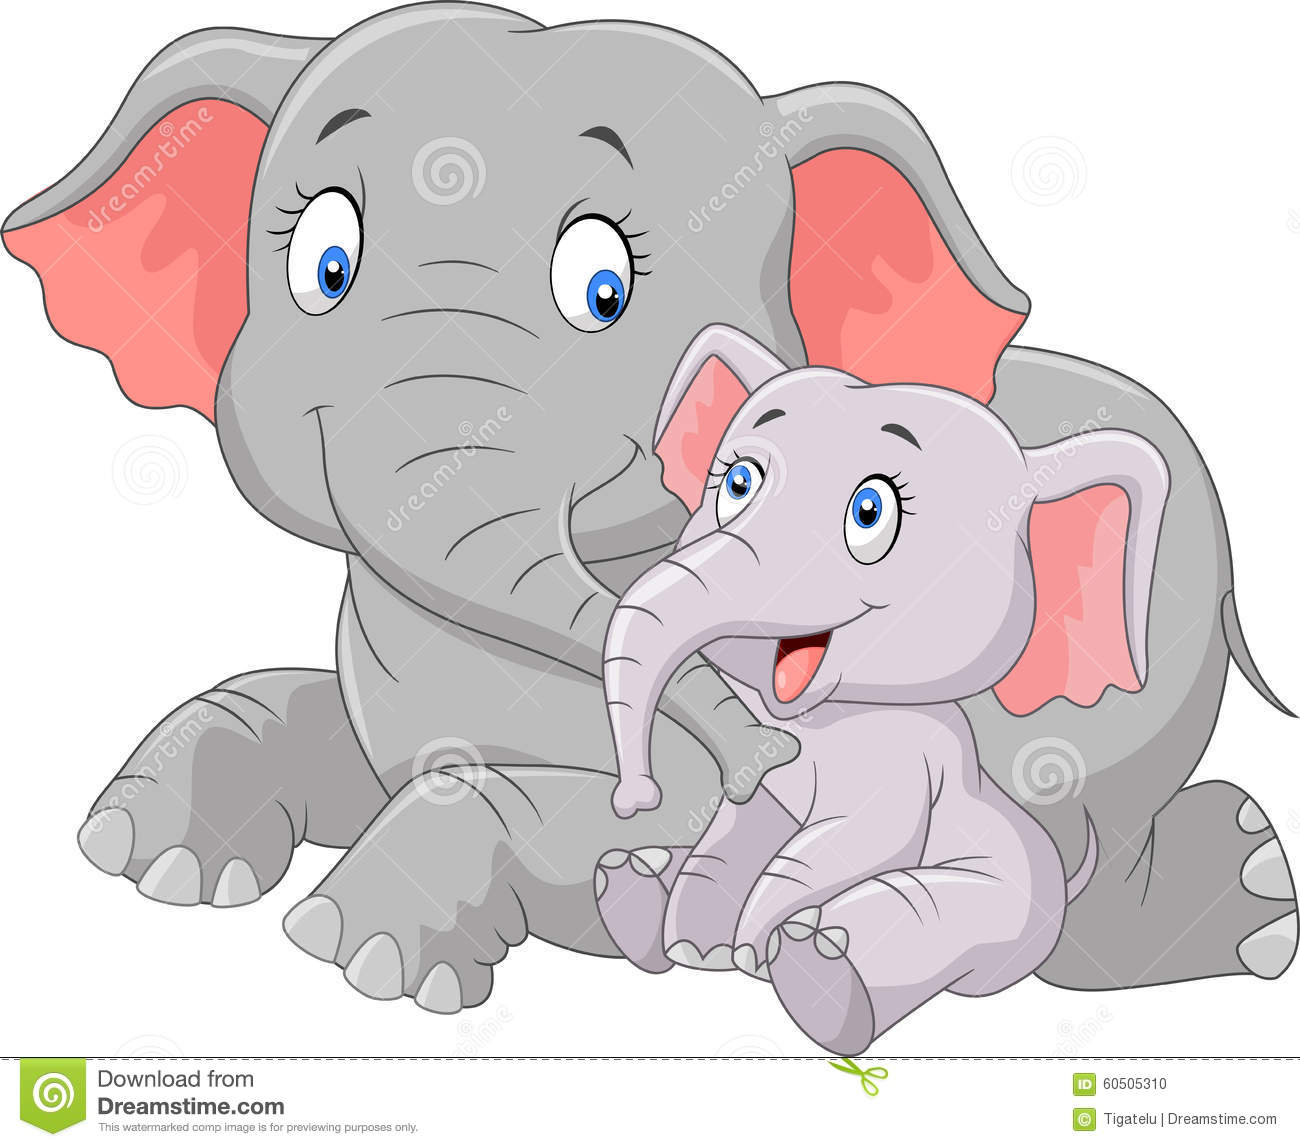 Mama baby elephant clipart svg free Cartoon Mother And Baby Elephant Stock Vector - Image: 45744014 svg free